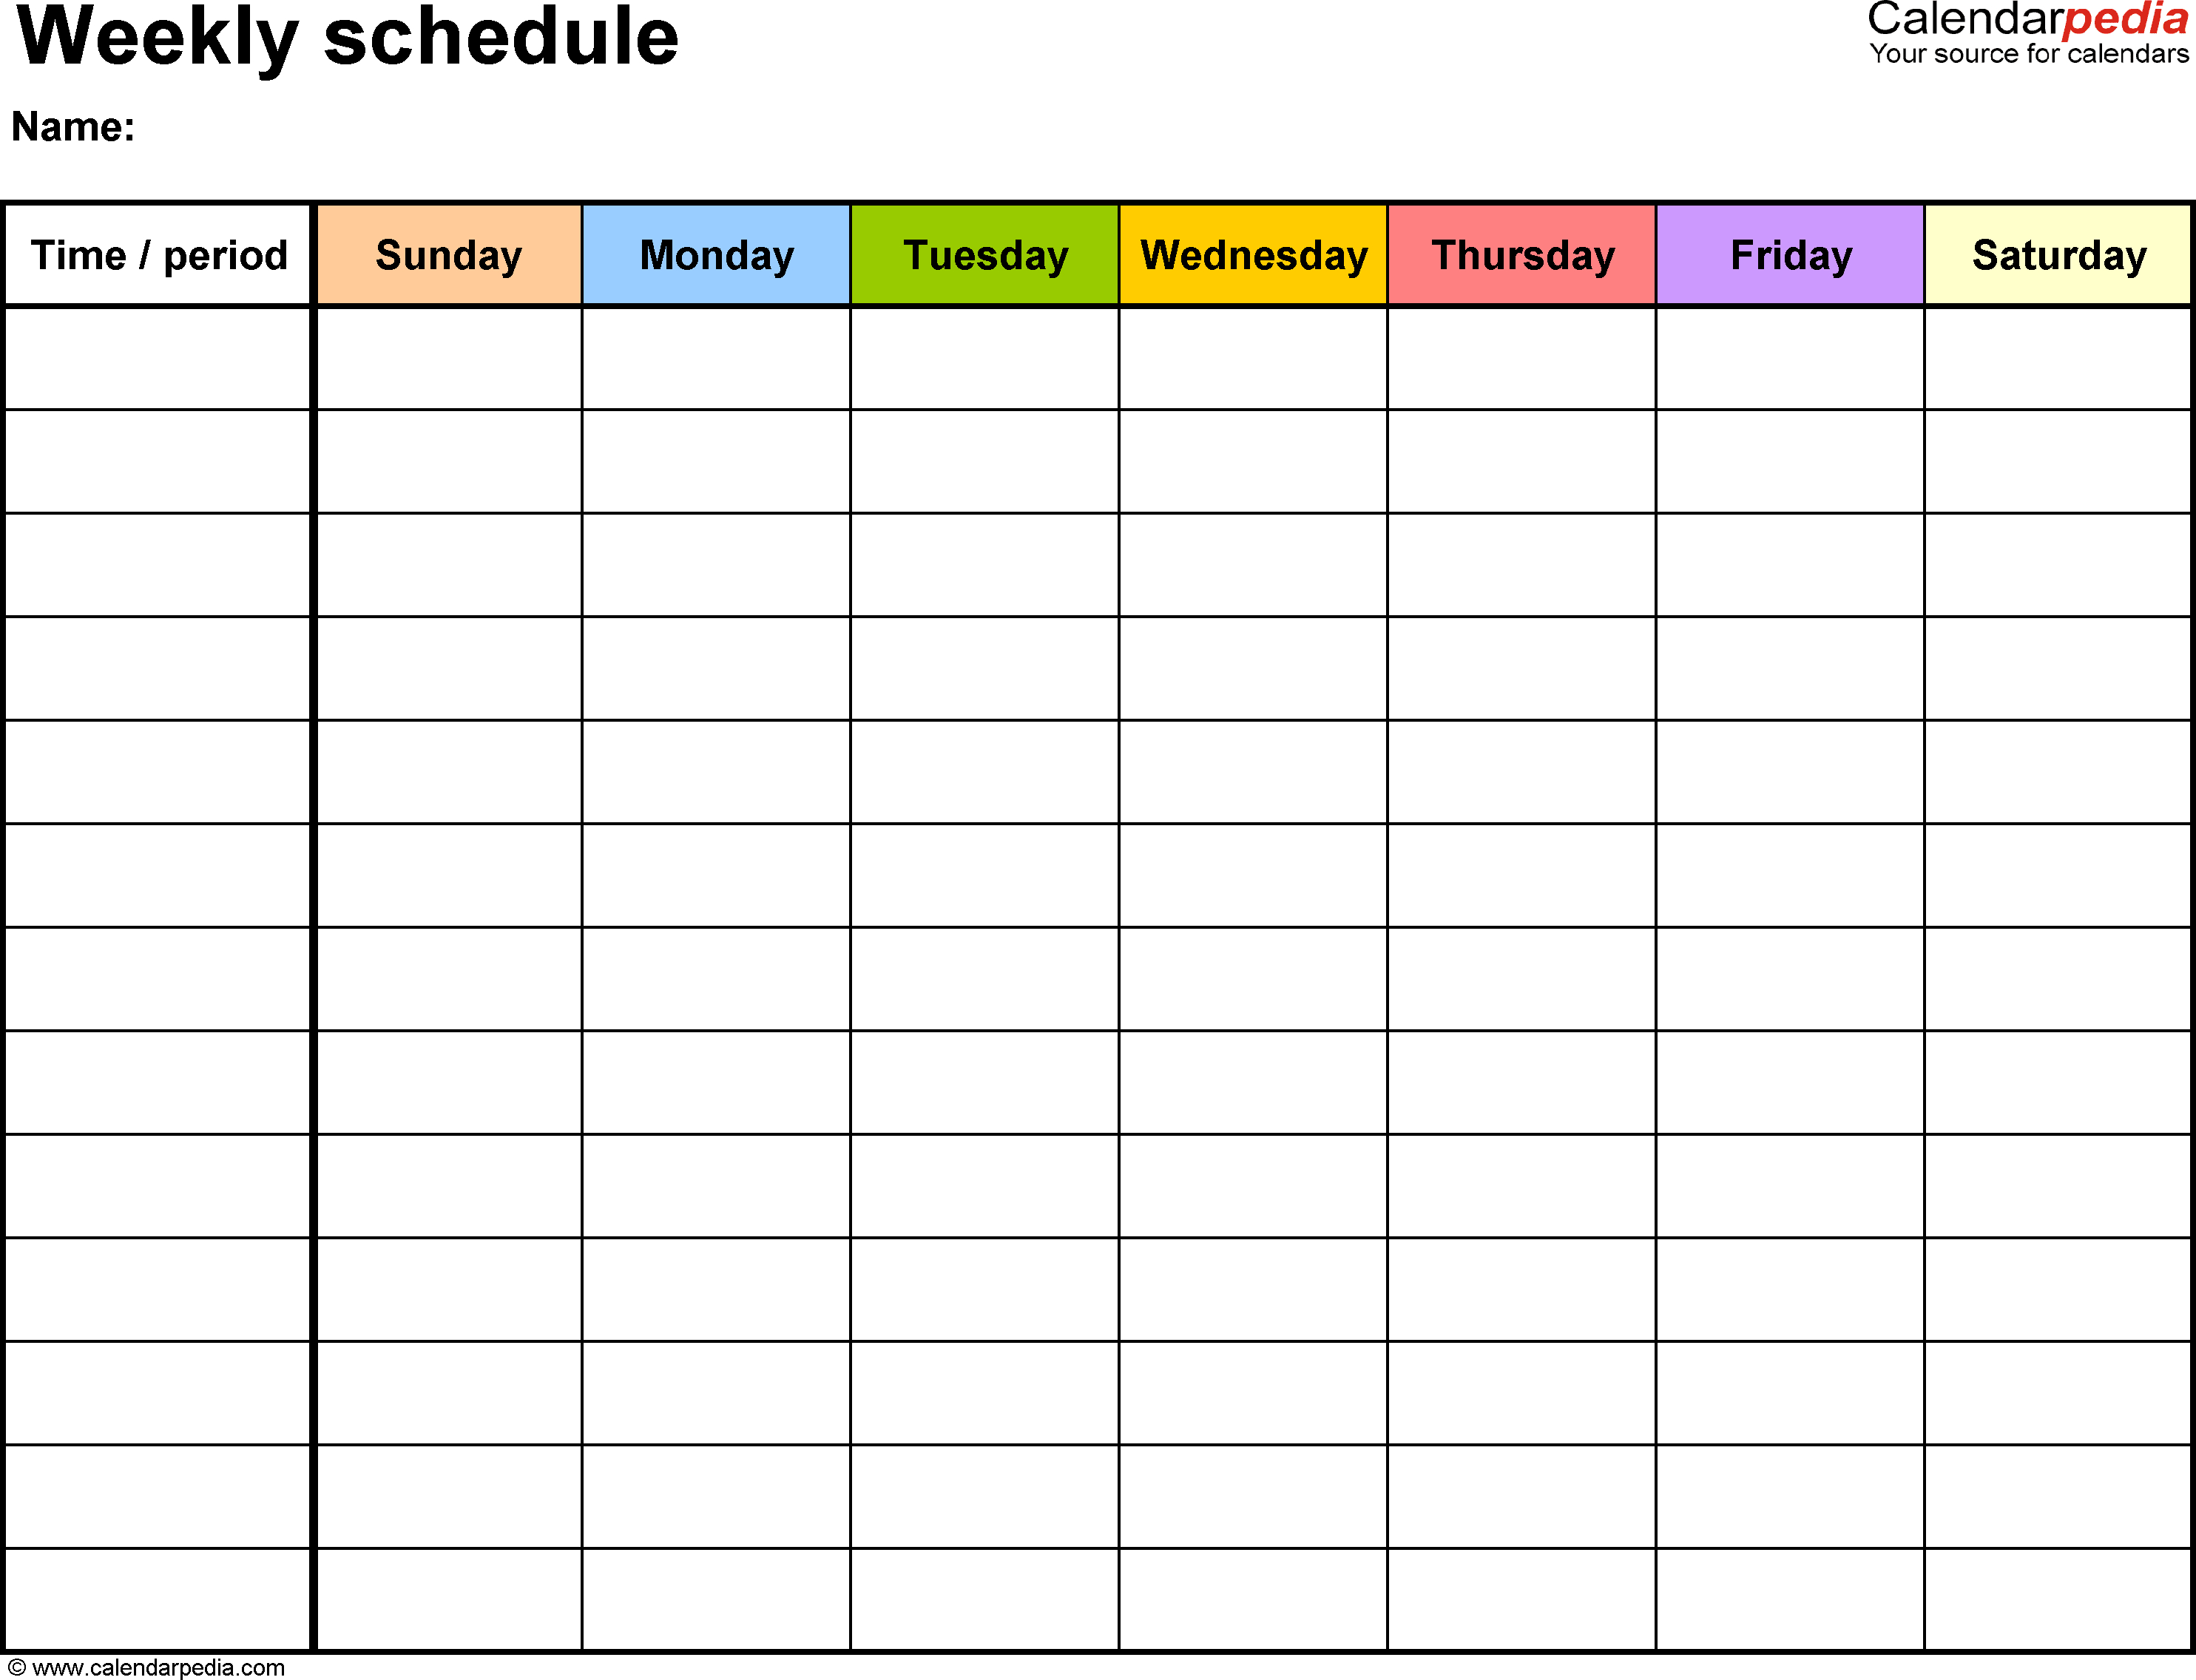 Free Weekly Schedule Templates For Excel - 18 Templates | ~Yoga - Free Printable School Agenda Templates